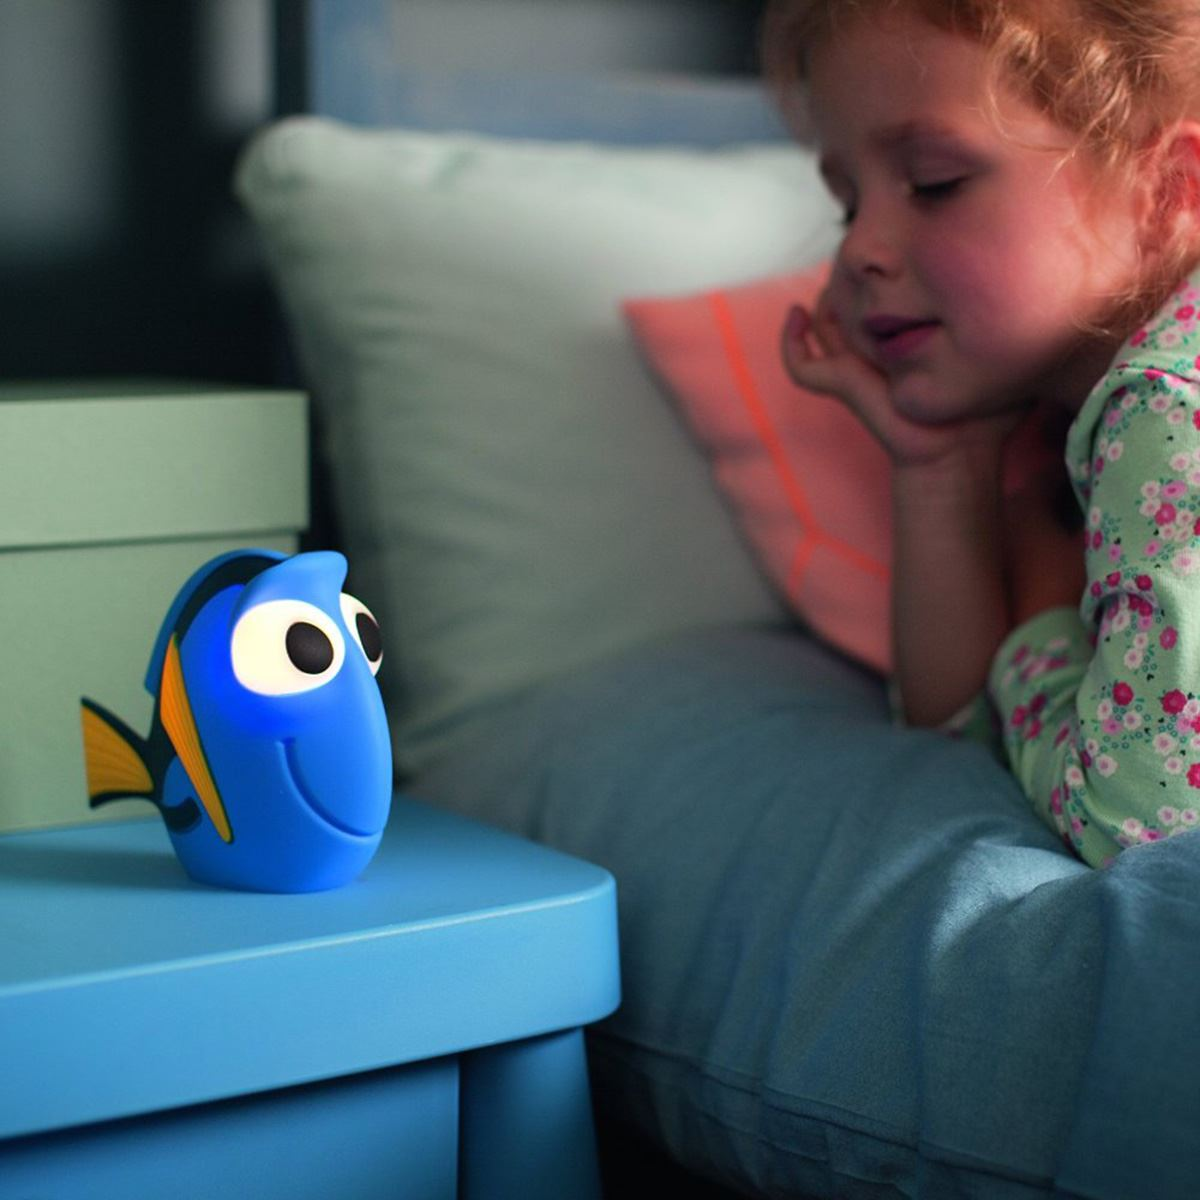 Philips Disney Softpal Portatile Led Notte Luci Bambini